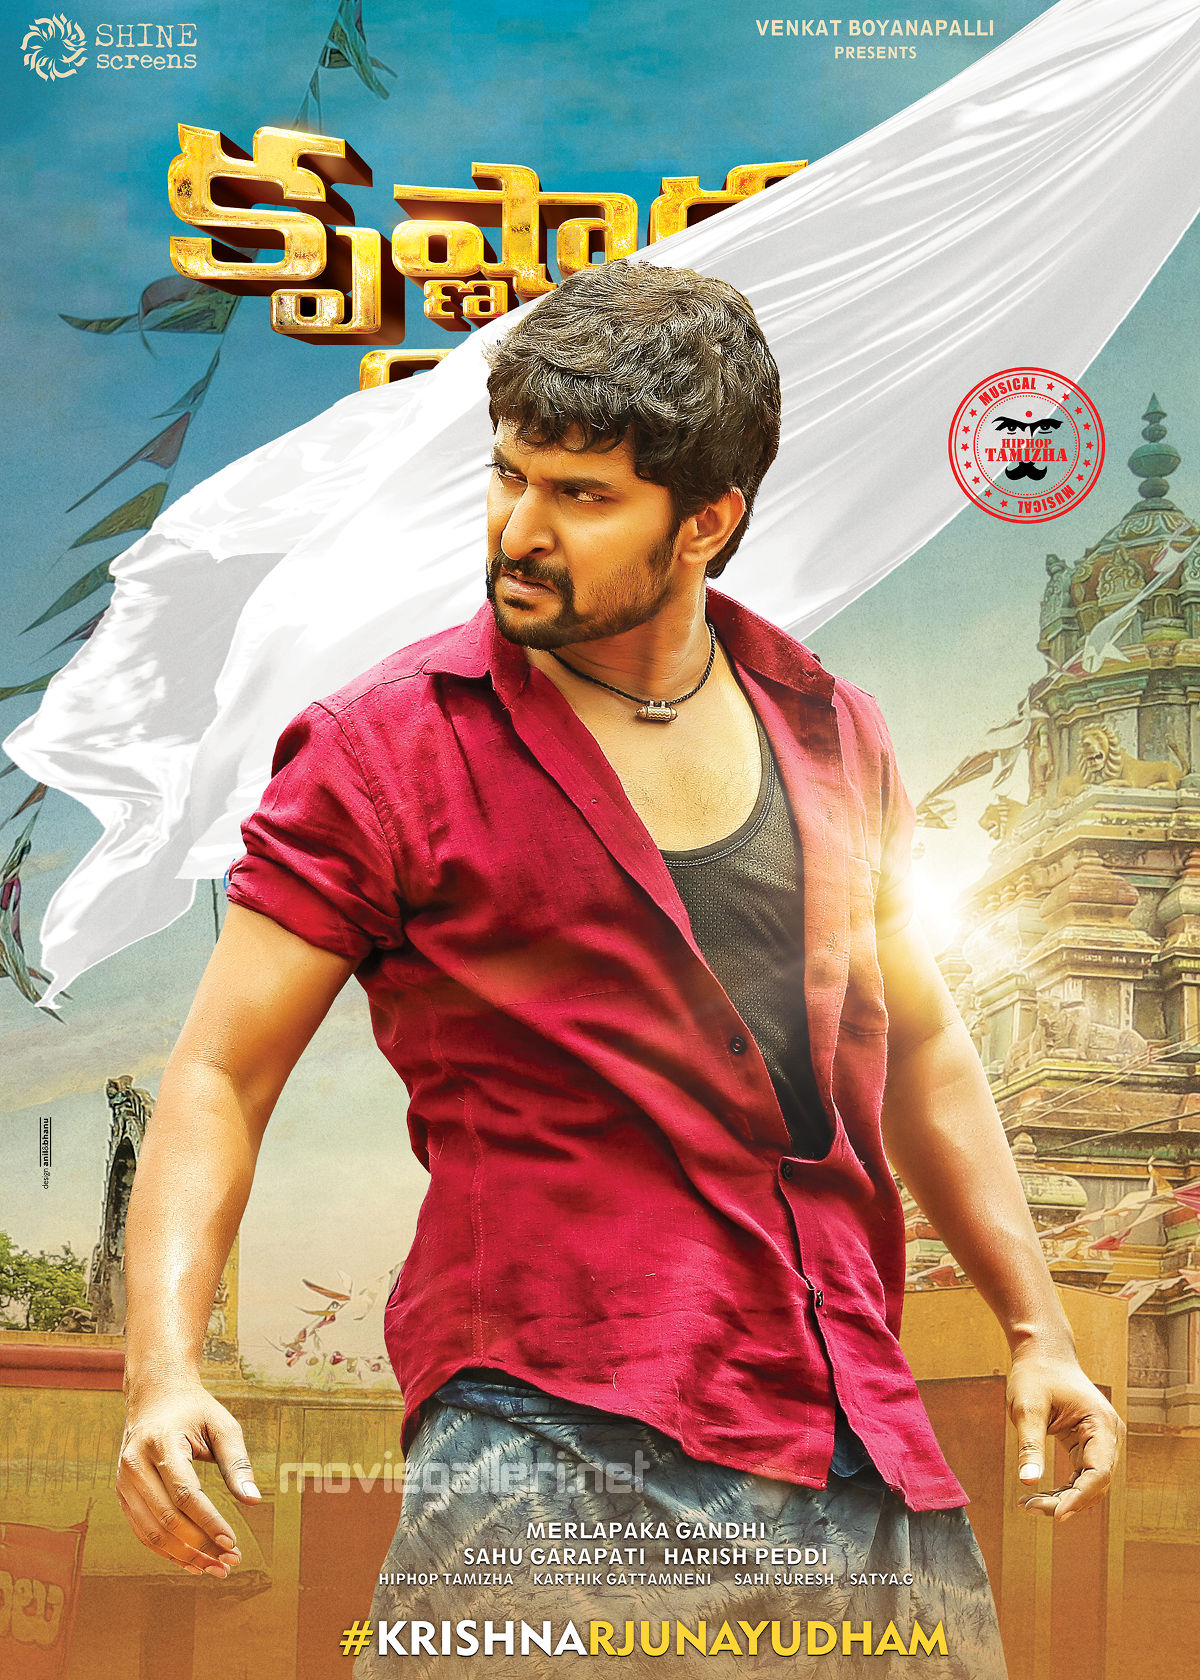 Krishnarjuna Yudham Movie Hero Nani as Krishna First Look Poster HD